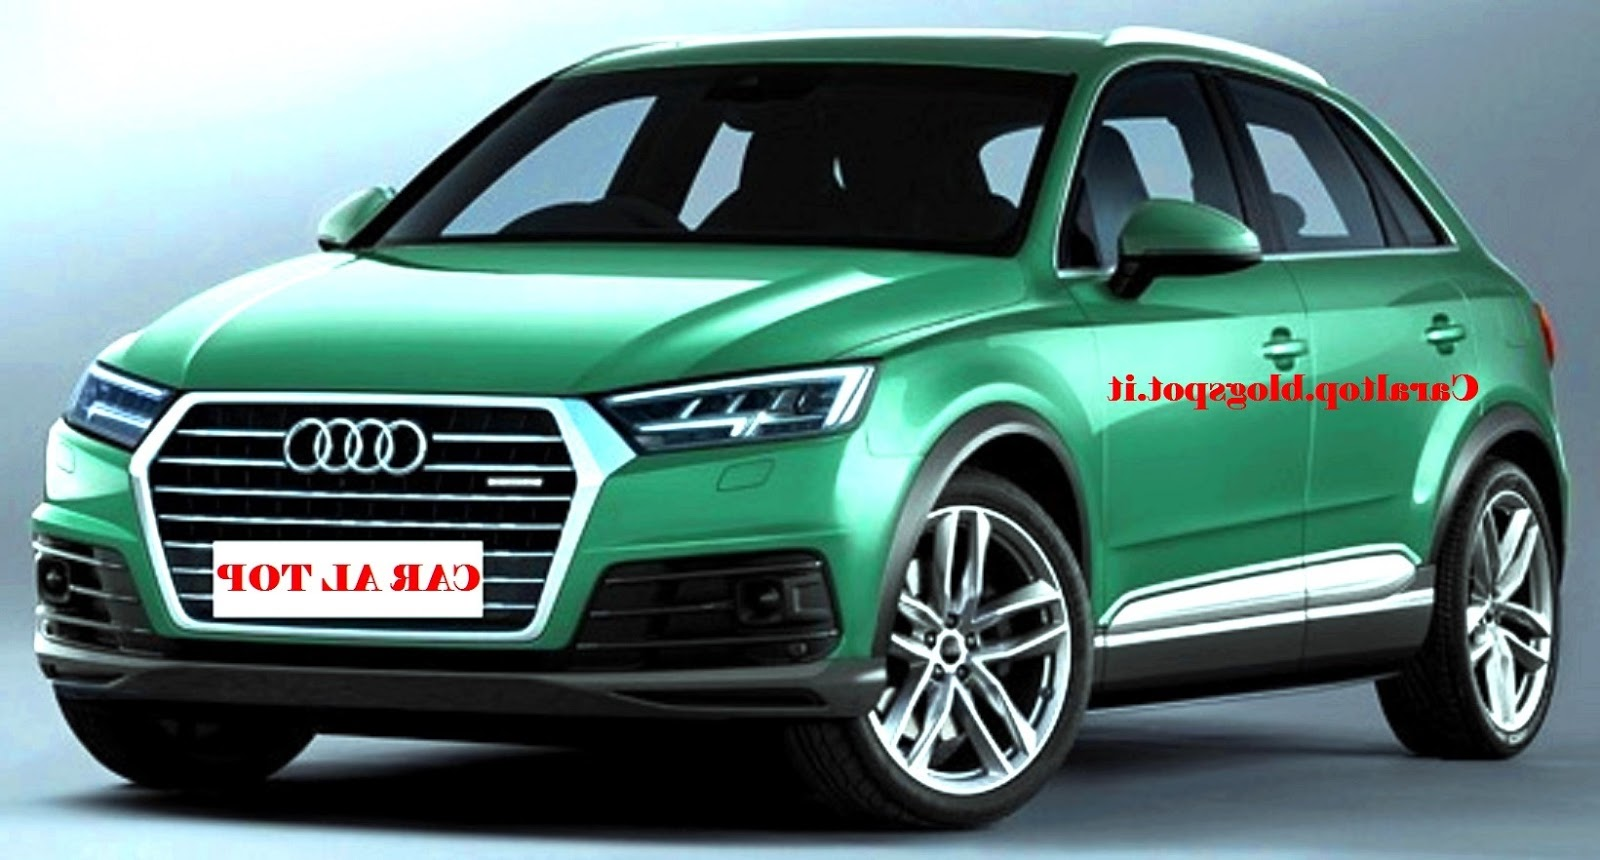 Car al top 33 04 01 2016 05 01 2016 for Quando esce la nuova audi q3 2018